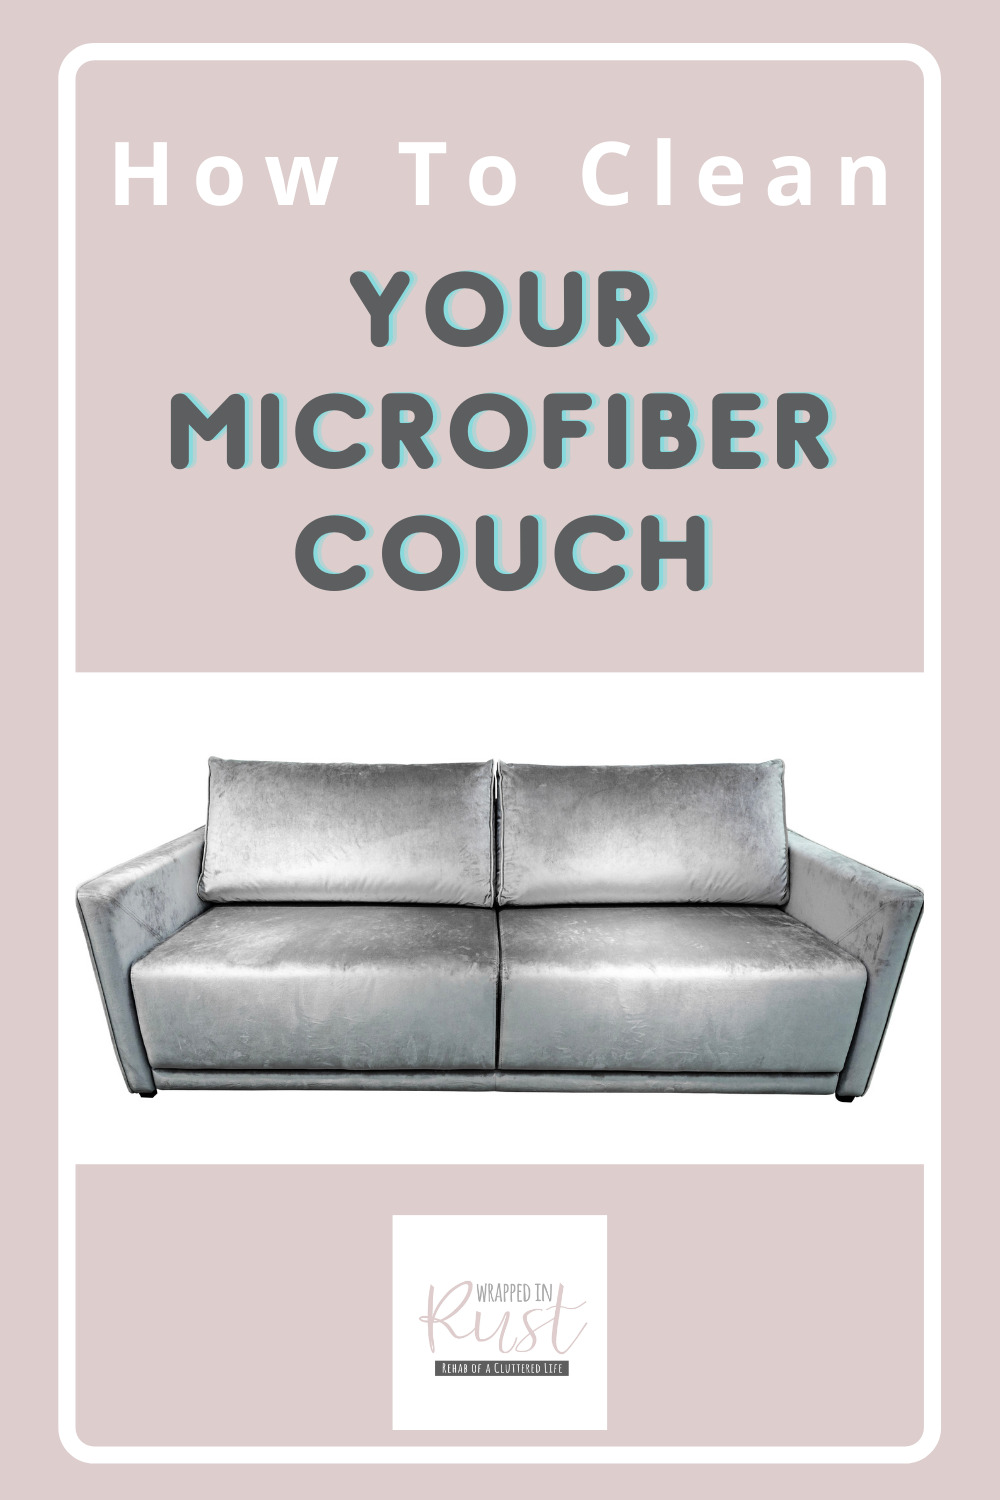 Wrappedinrust.com is the best place to find tricks for cleaning tough spots. Find creative ideas to make tidying up a breeze. Check out how you can easily clean your microfiber couch now!